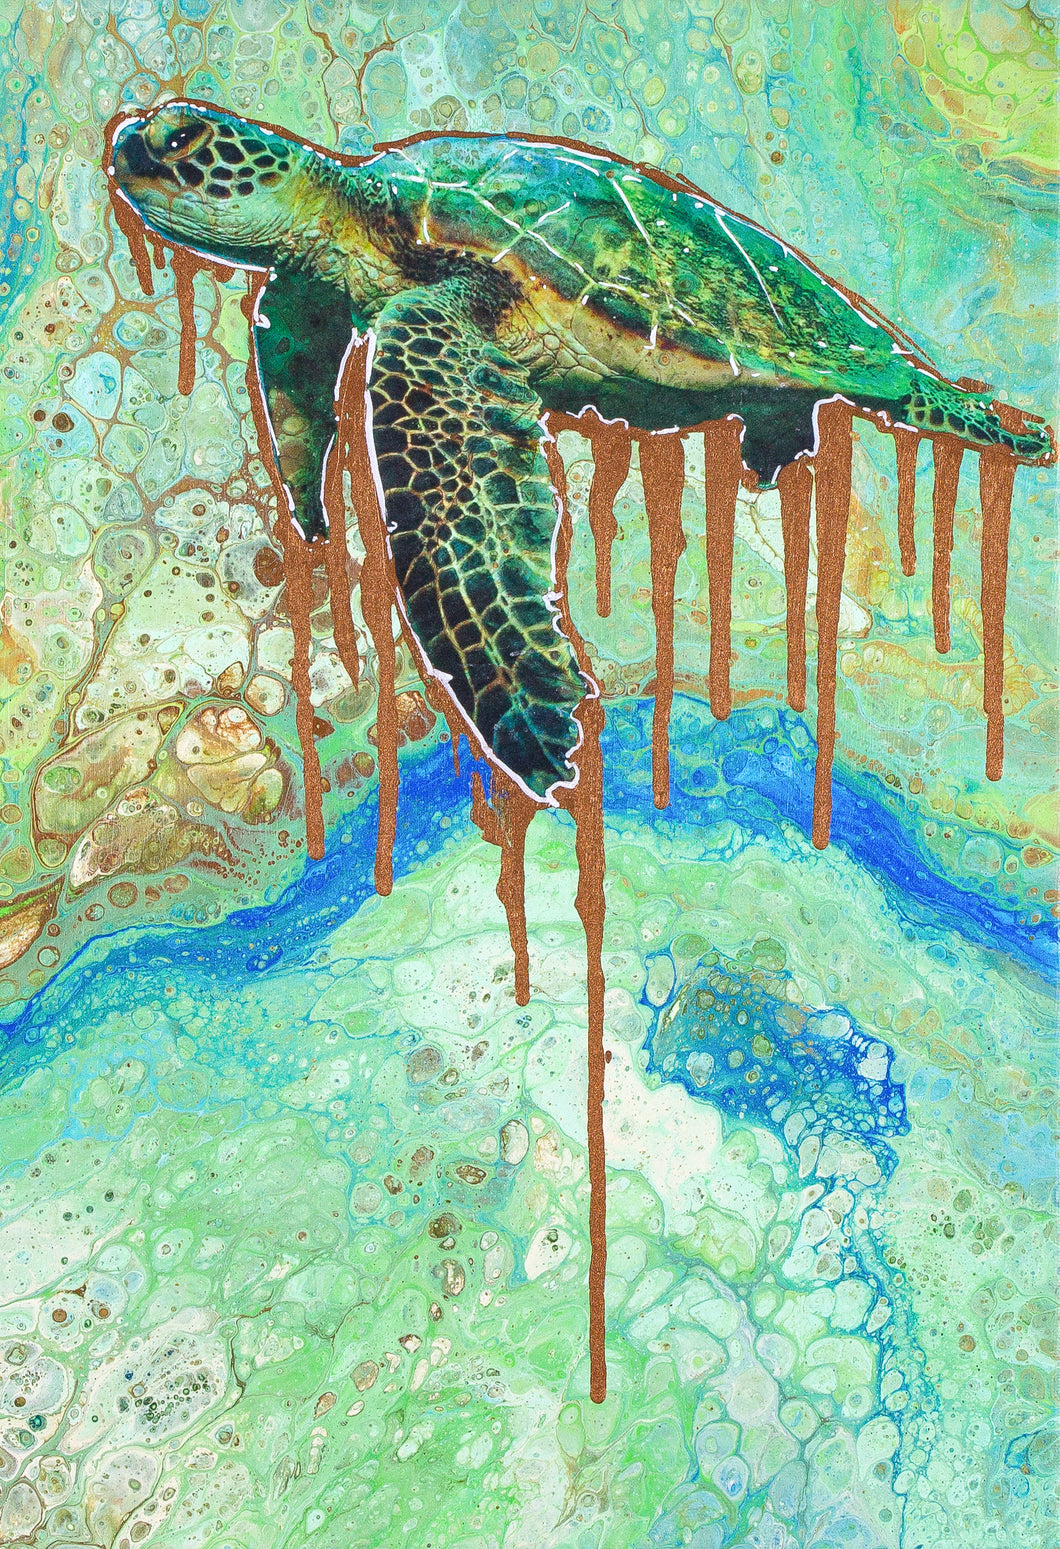 TOXIC TURTLE 12X16' ORIGINAL ARTWORK - JRartworks